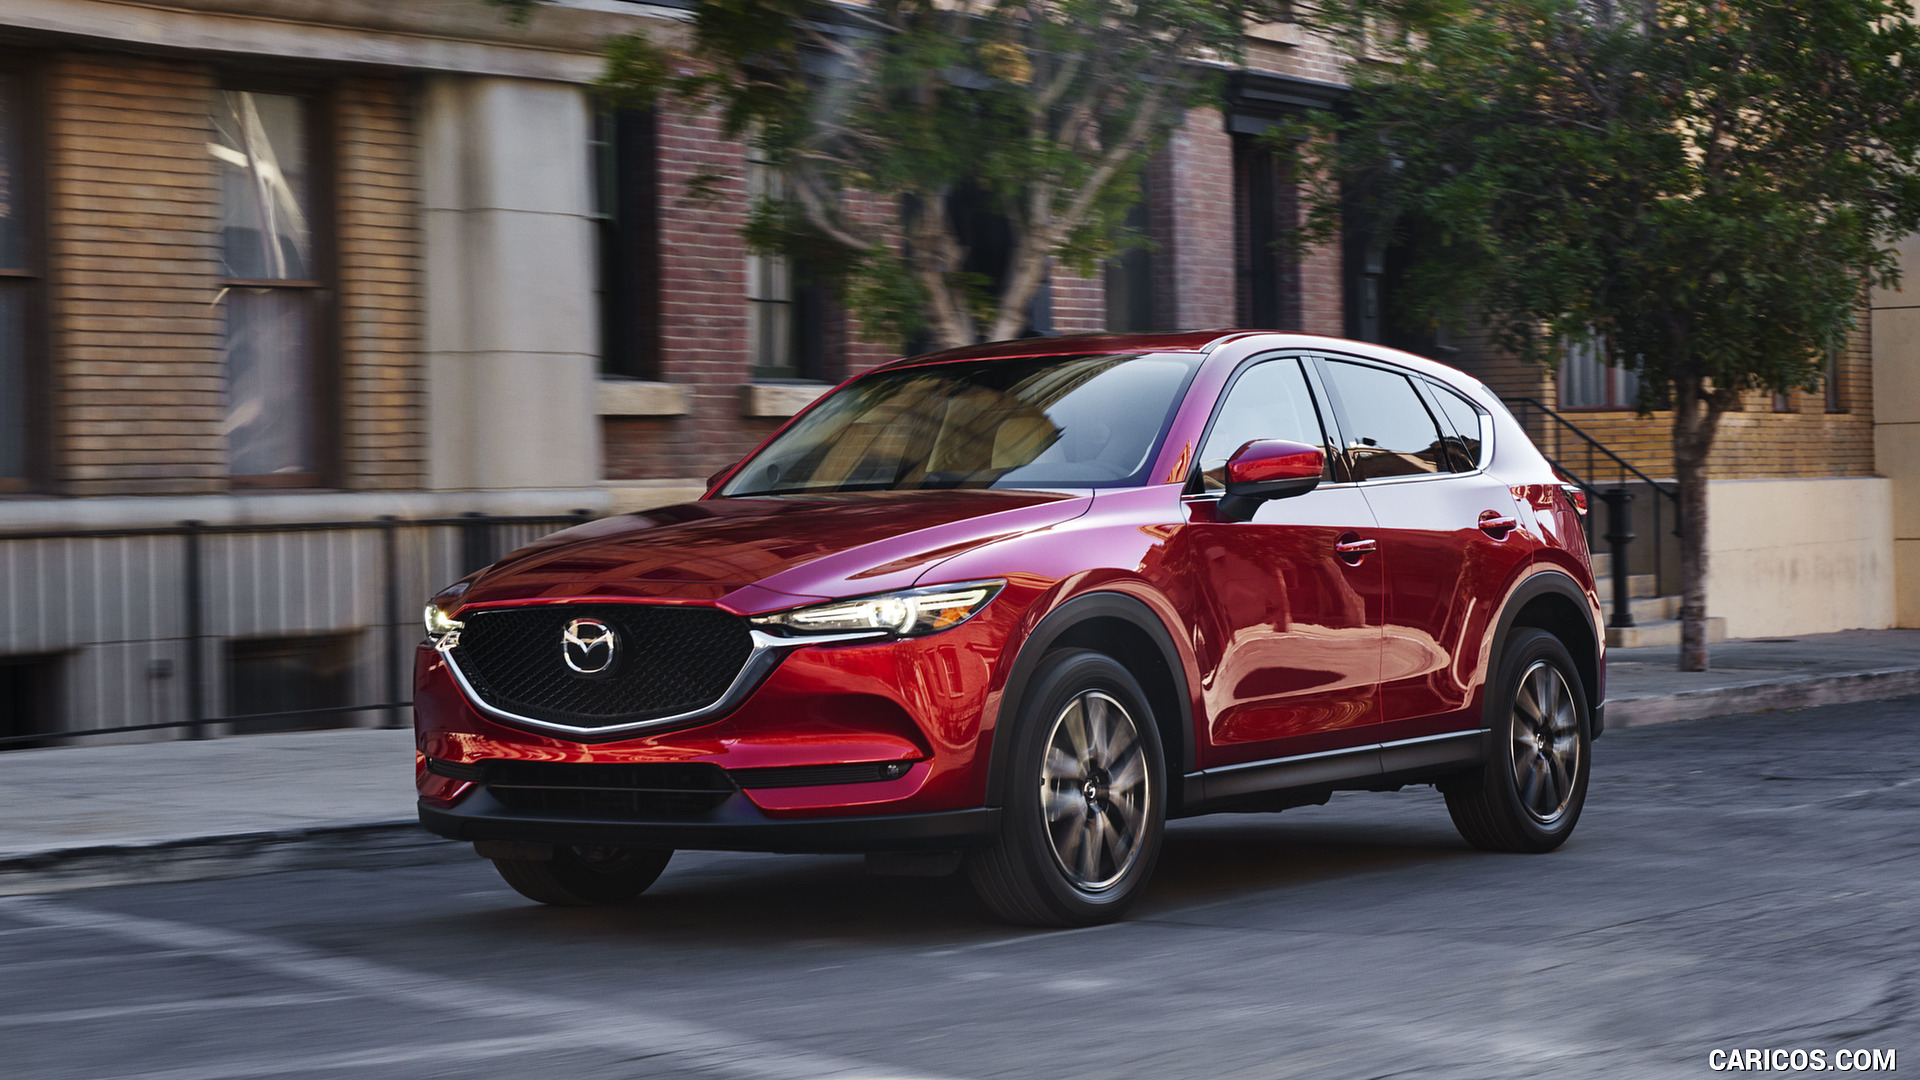 1920x1080 - Mazda CX-5 Wallpapers 31